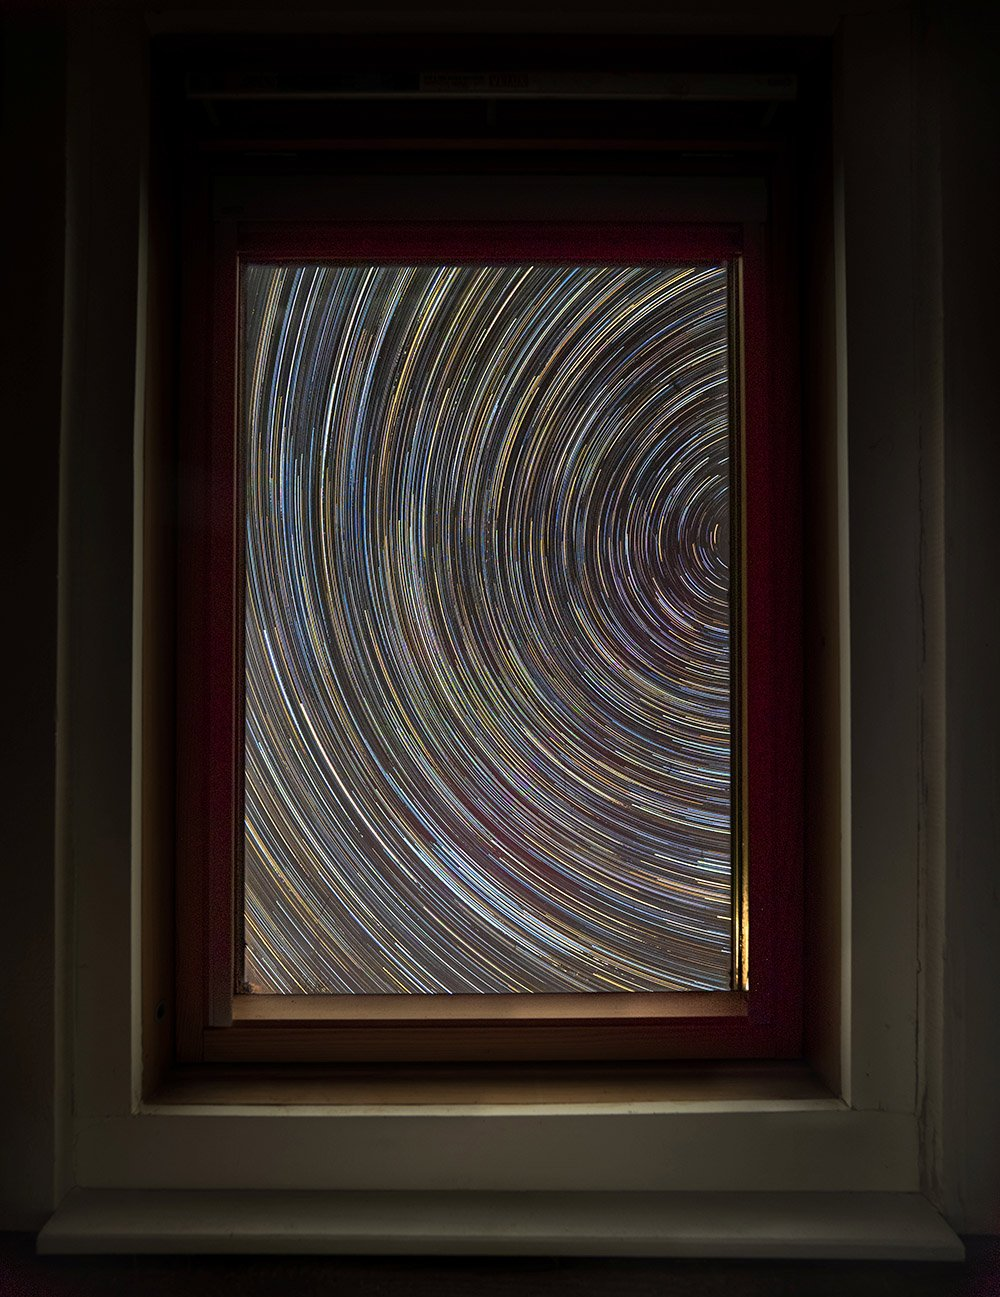 Star trail taken from inside a house in Shropshire